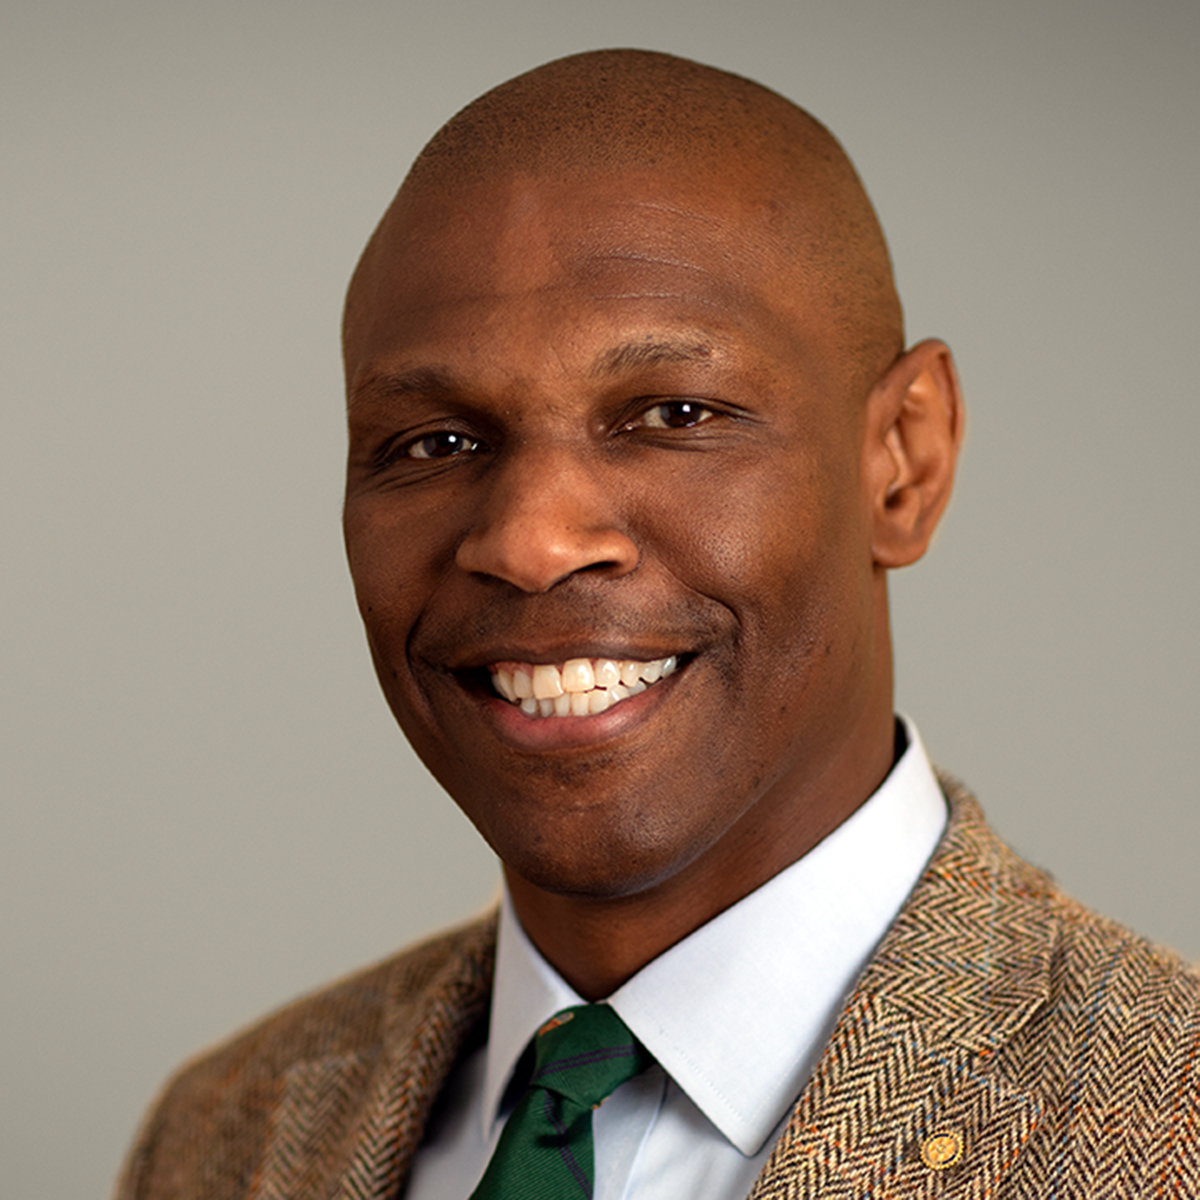 From Air Force plane nosedive to university president: Dr. Chris Howard & the power of mentoring S2EP8